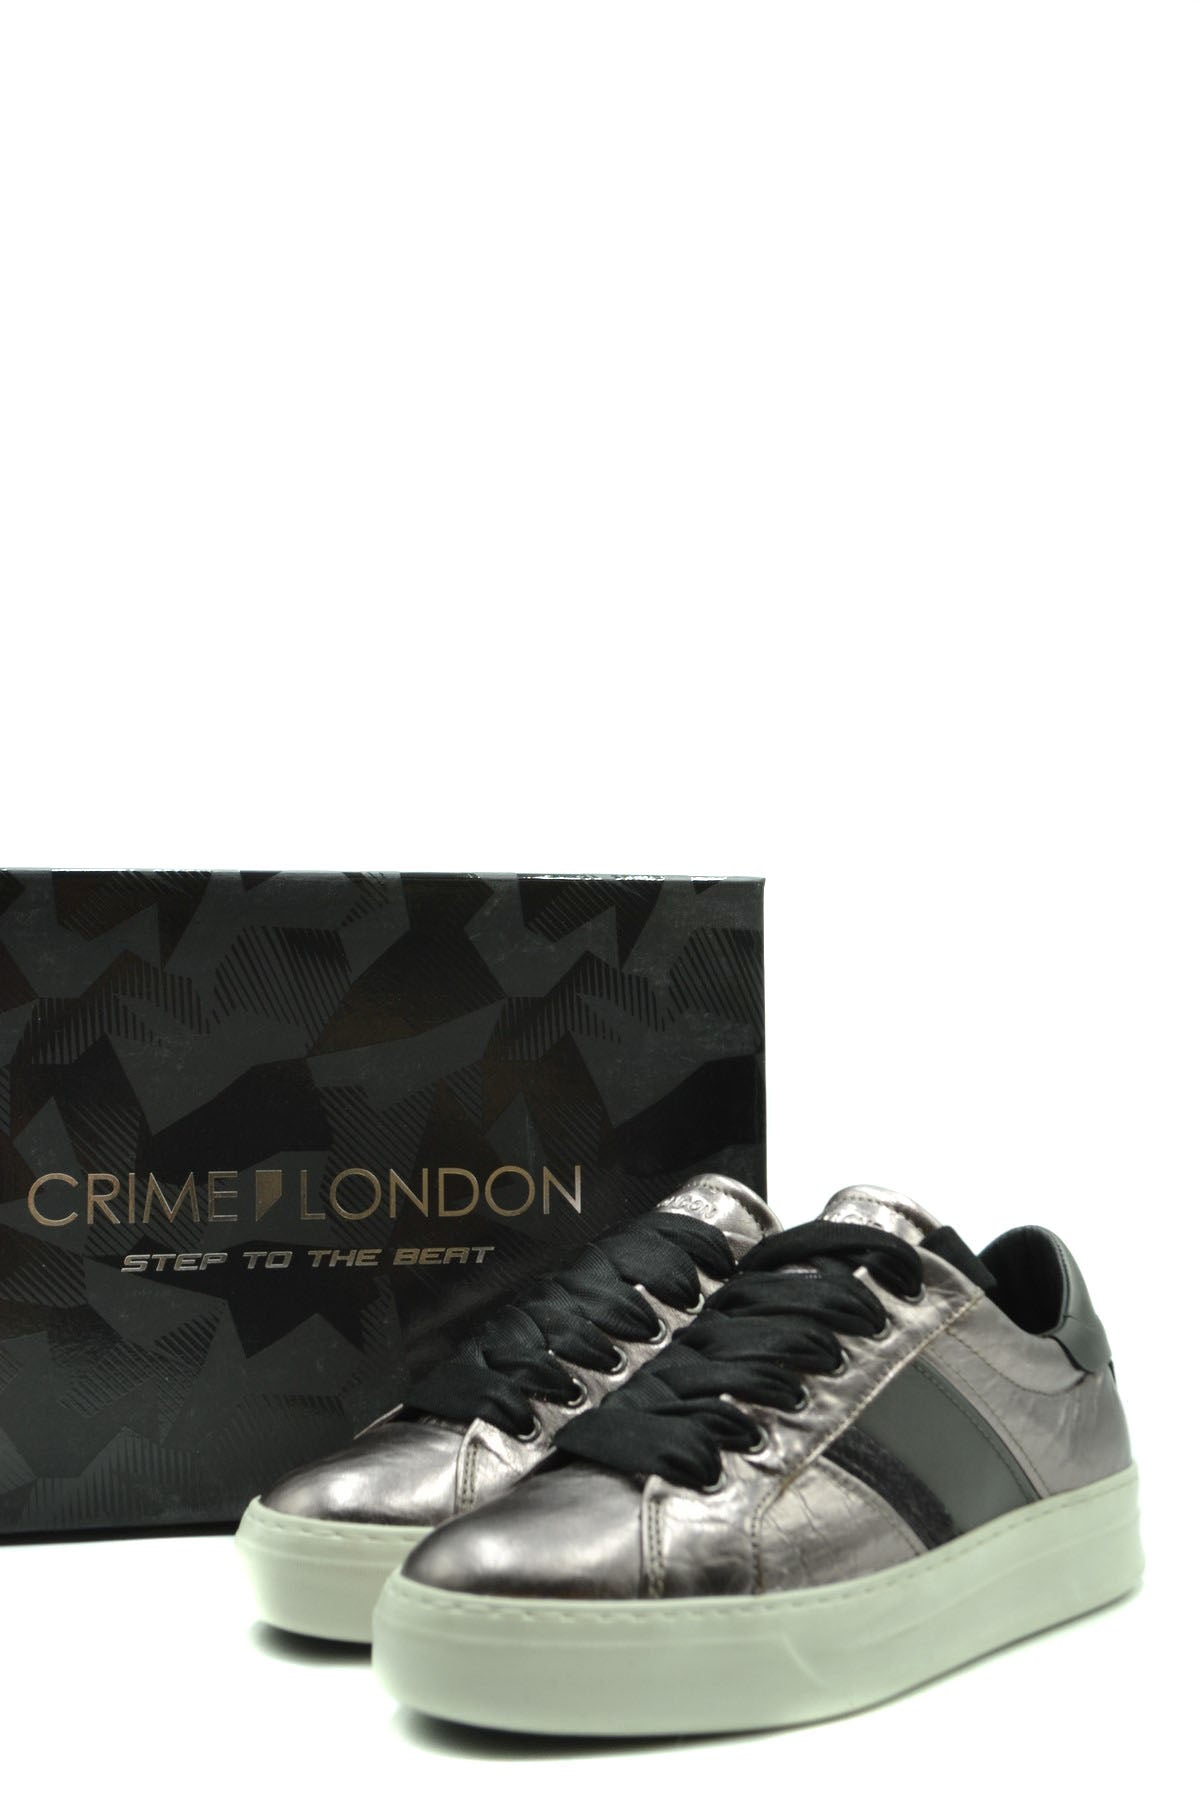 Shoes Crime London-Sports & Entertainment - Sneakers-Product Details Terms: New With LabelMain Color: BronzeType Of Accessory: ShoesSeason: Fall / WinterMade In: ItalyGender: WomanSize: EuComposition: Leather 100%Year: 2020Manufacturer Part Number: 25221Aa1.23-Keyomi-Sook